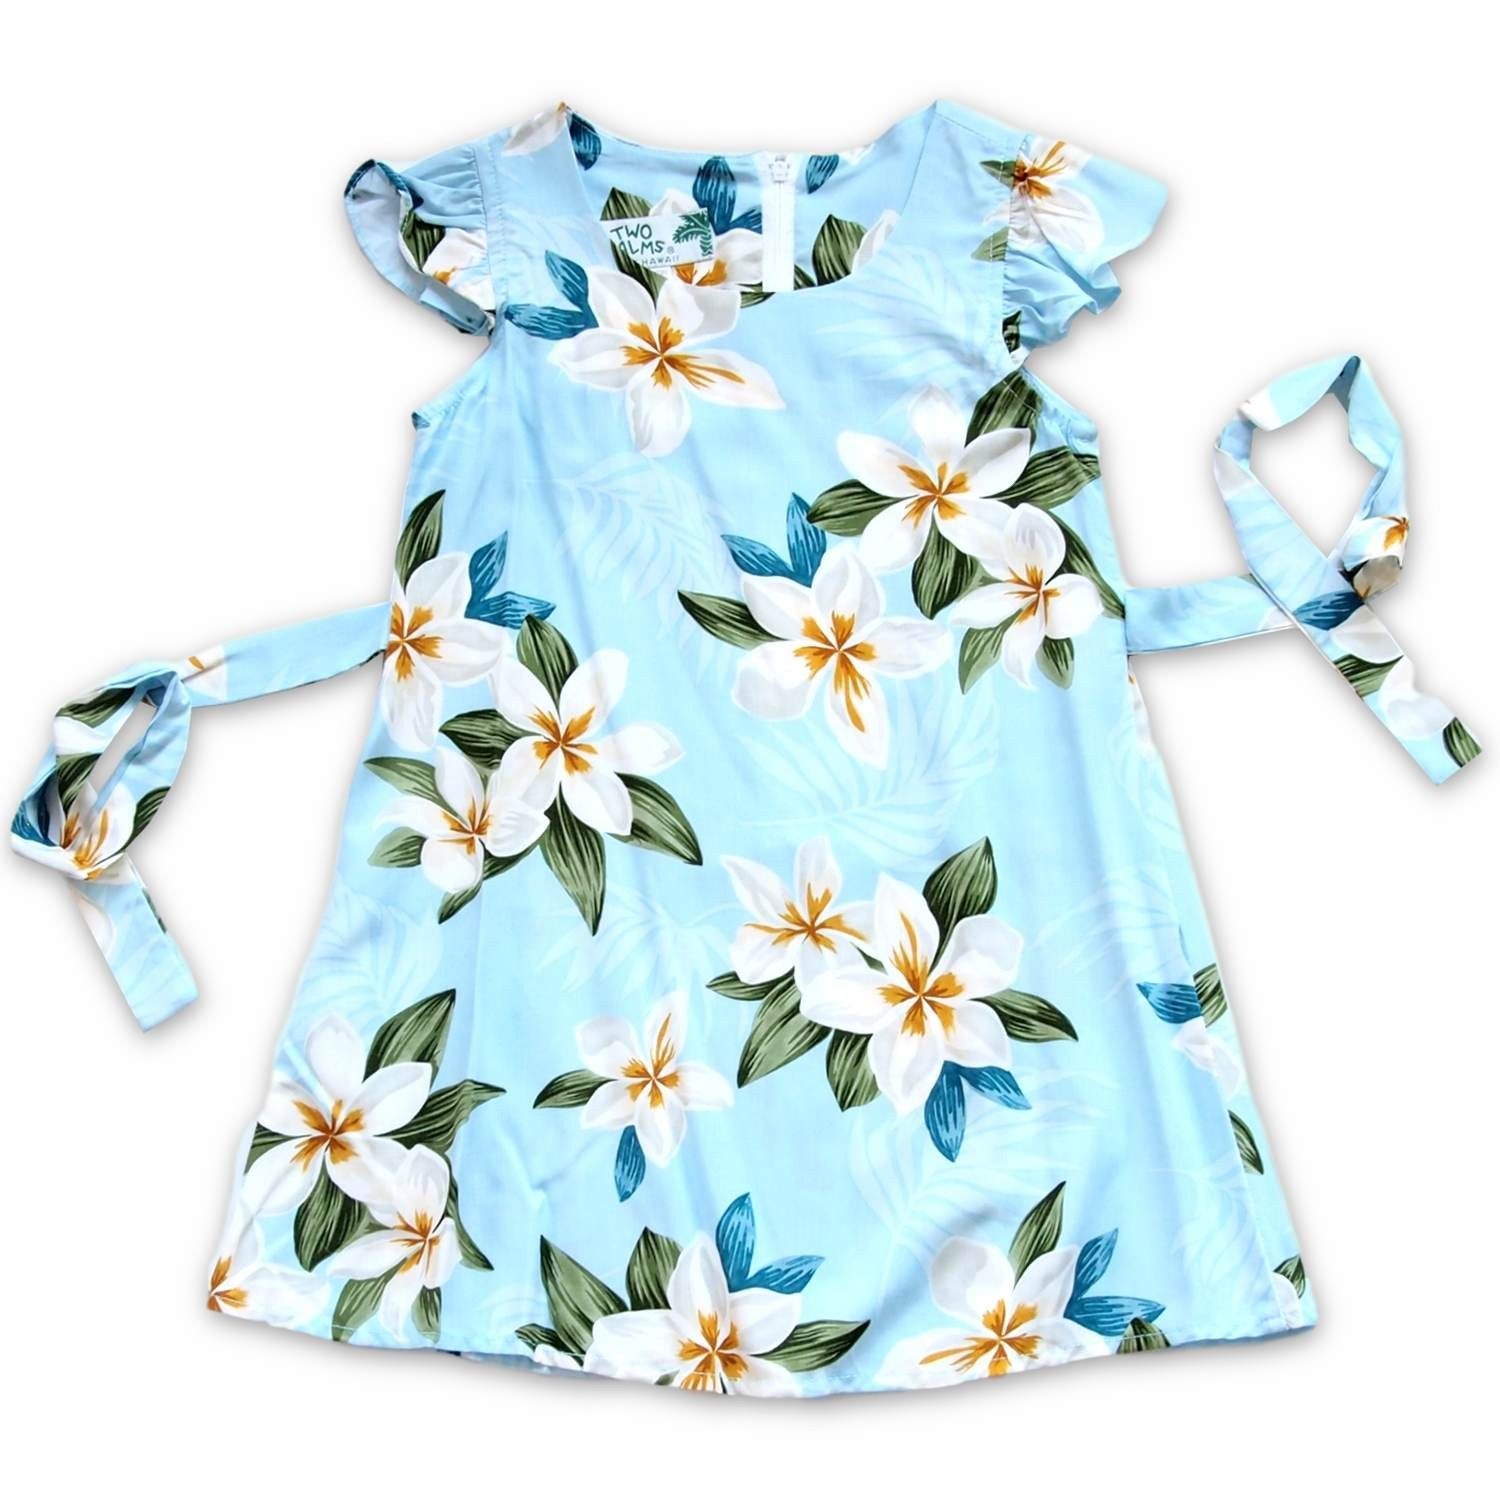 Escape Blue Hawaiian Girl Rayon Dress | Hawaiian girls, Blue ...